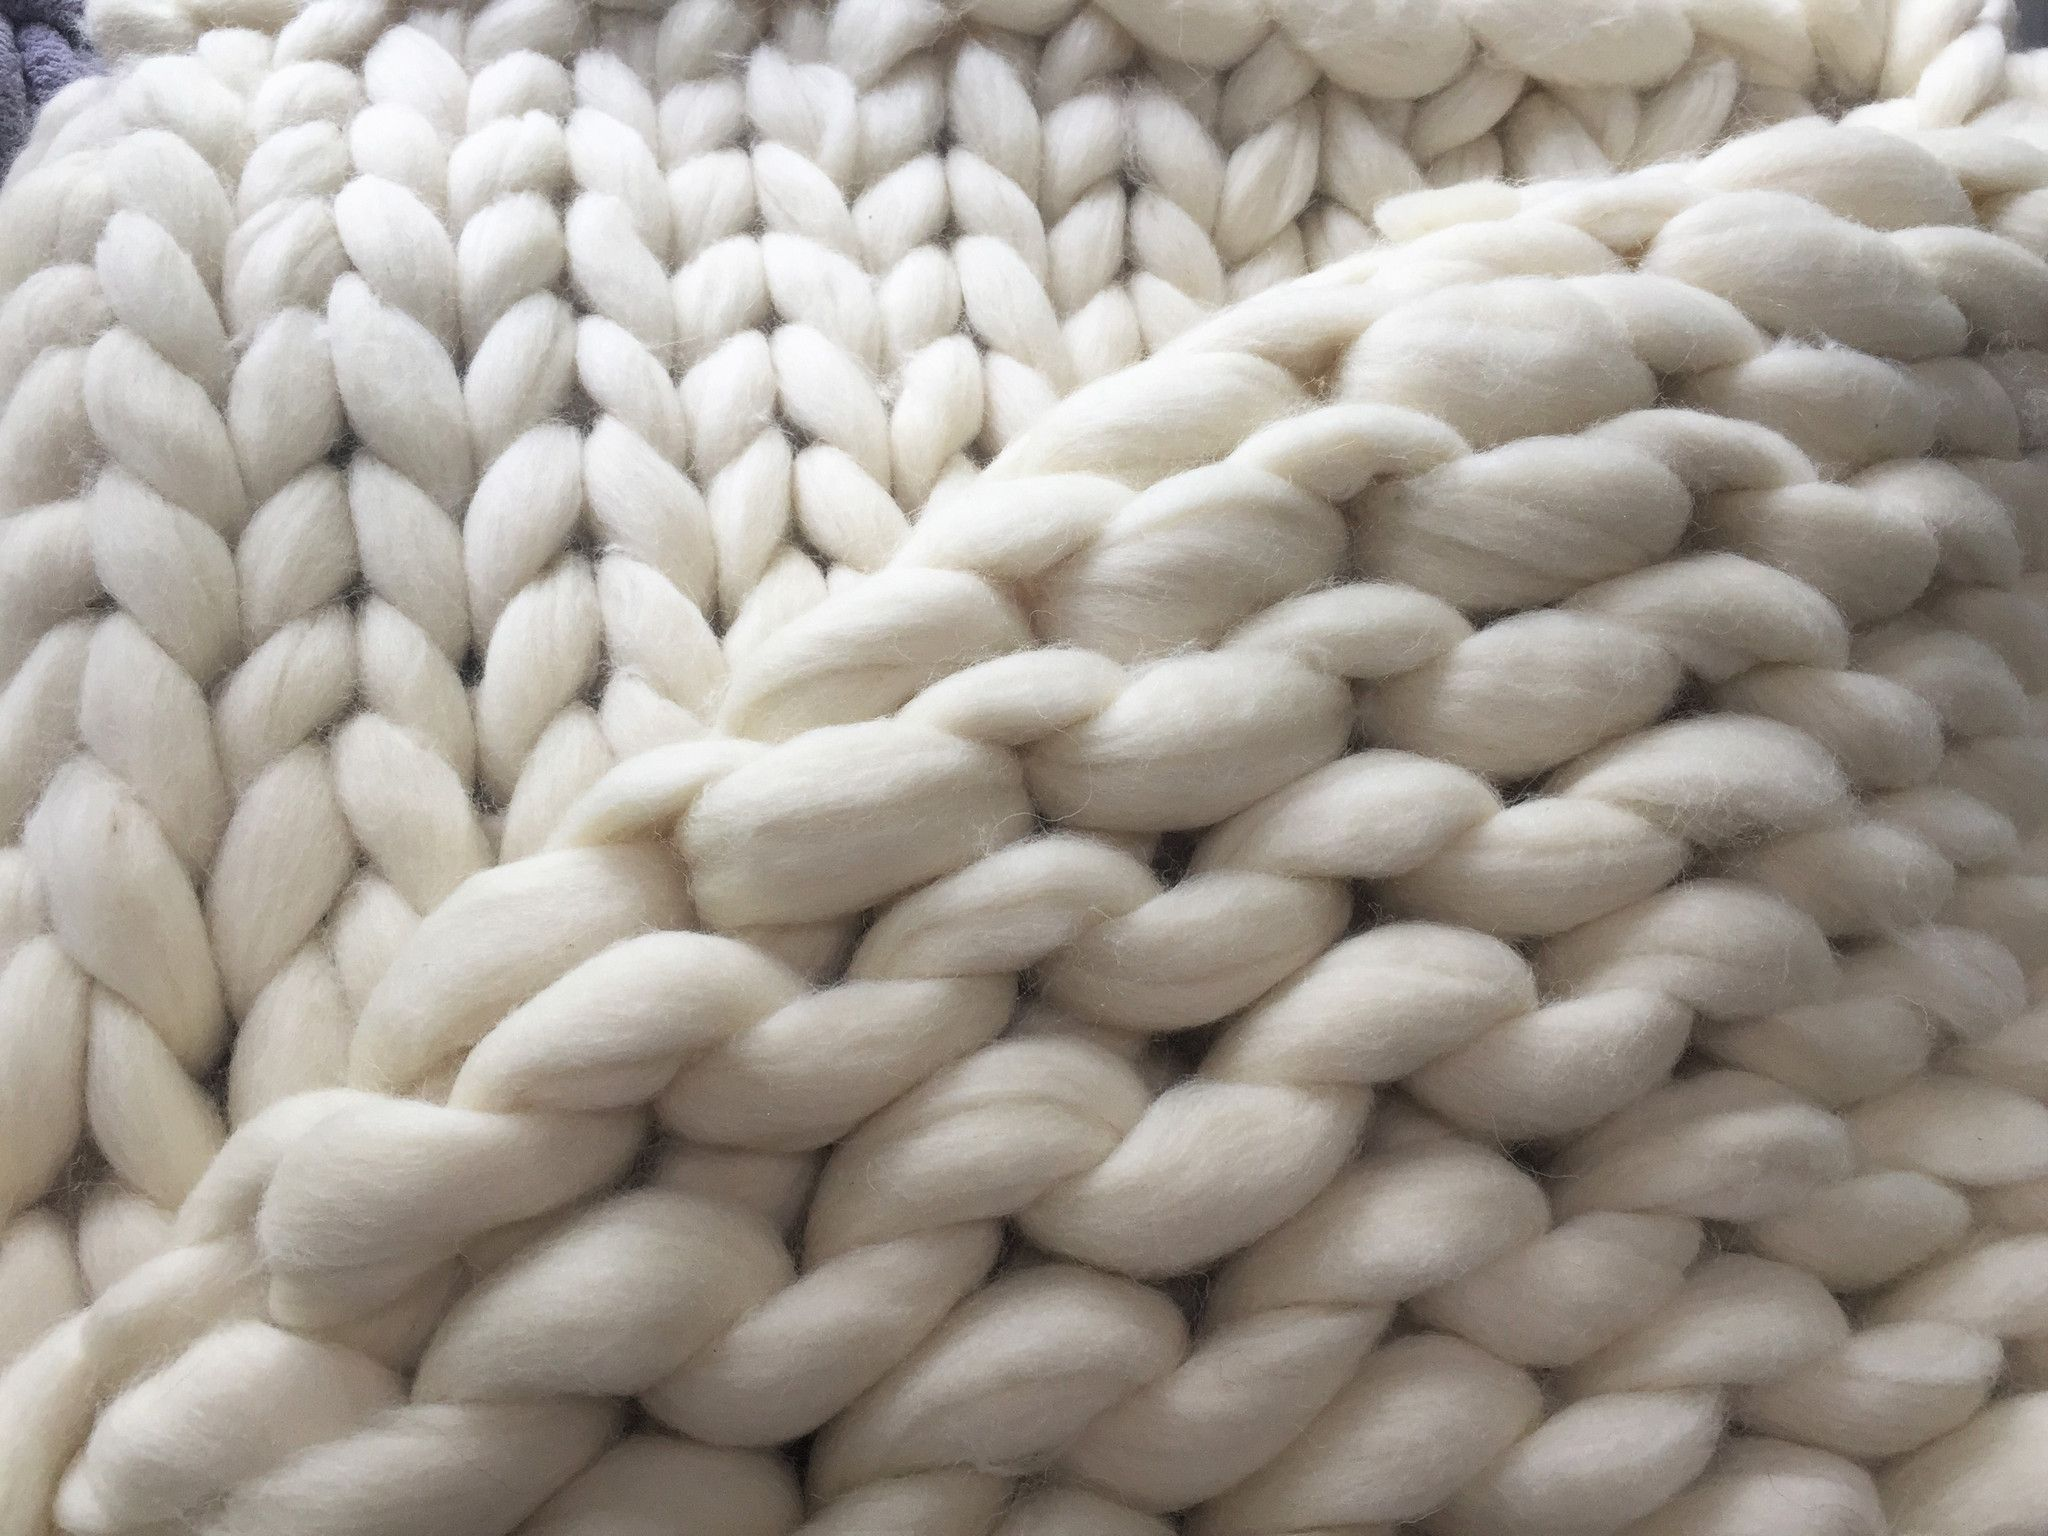 This super Chunky Knit Blanket is incredibly soft and beautiful. It is made from softest Merino wool It will be a great gift for yourself or your loved ones. Great gift for Birthday, Anniversary, Brid